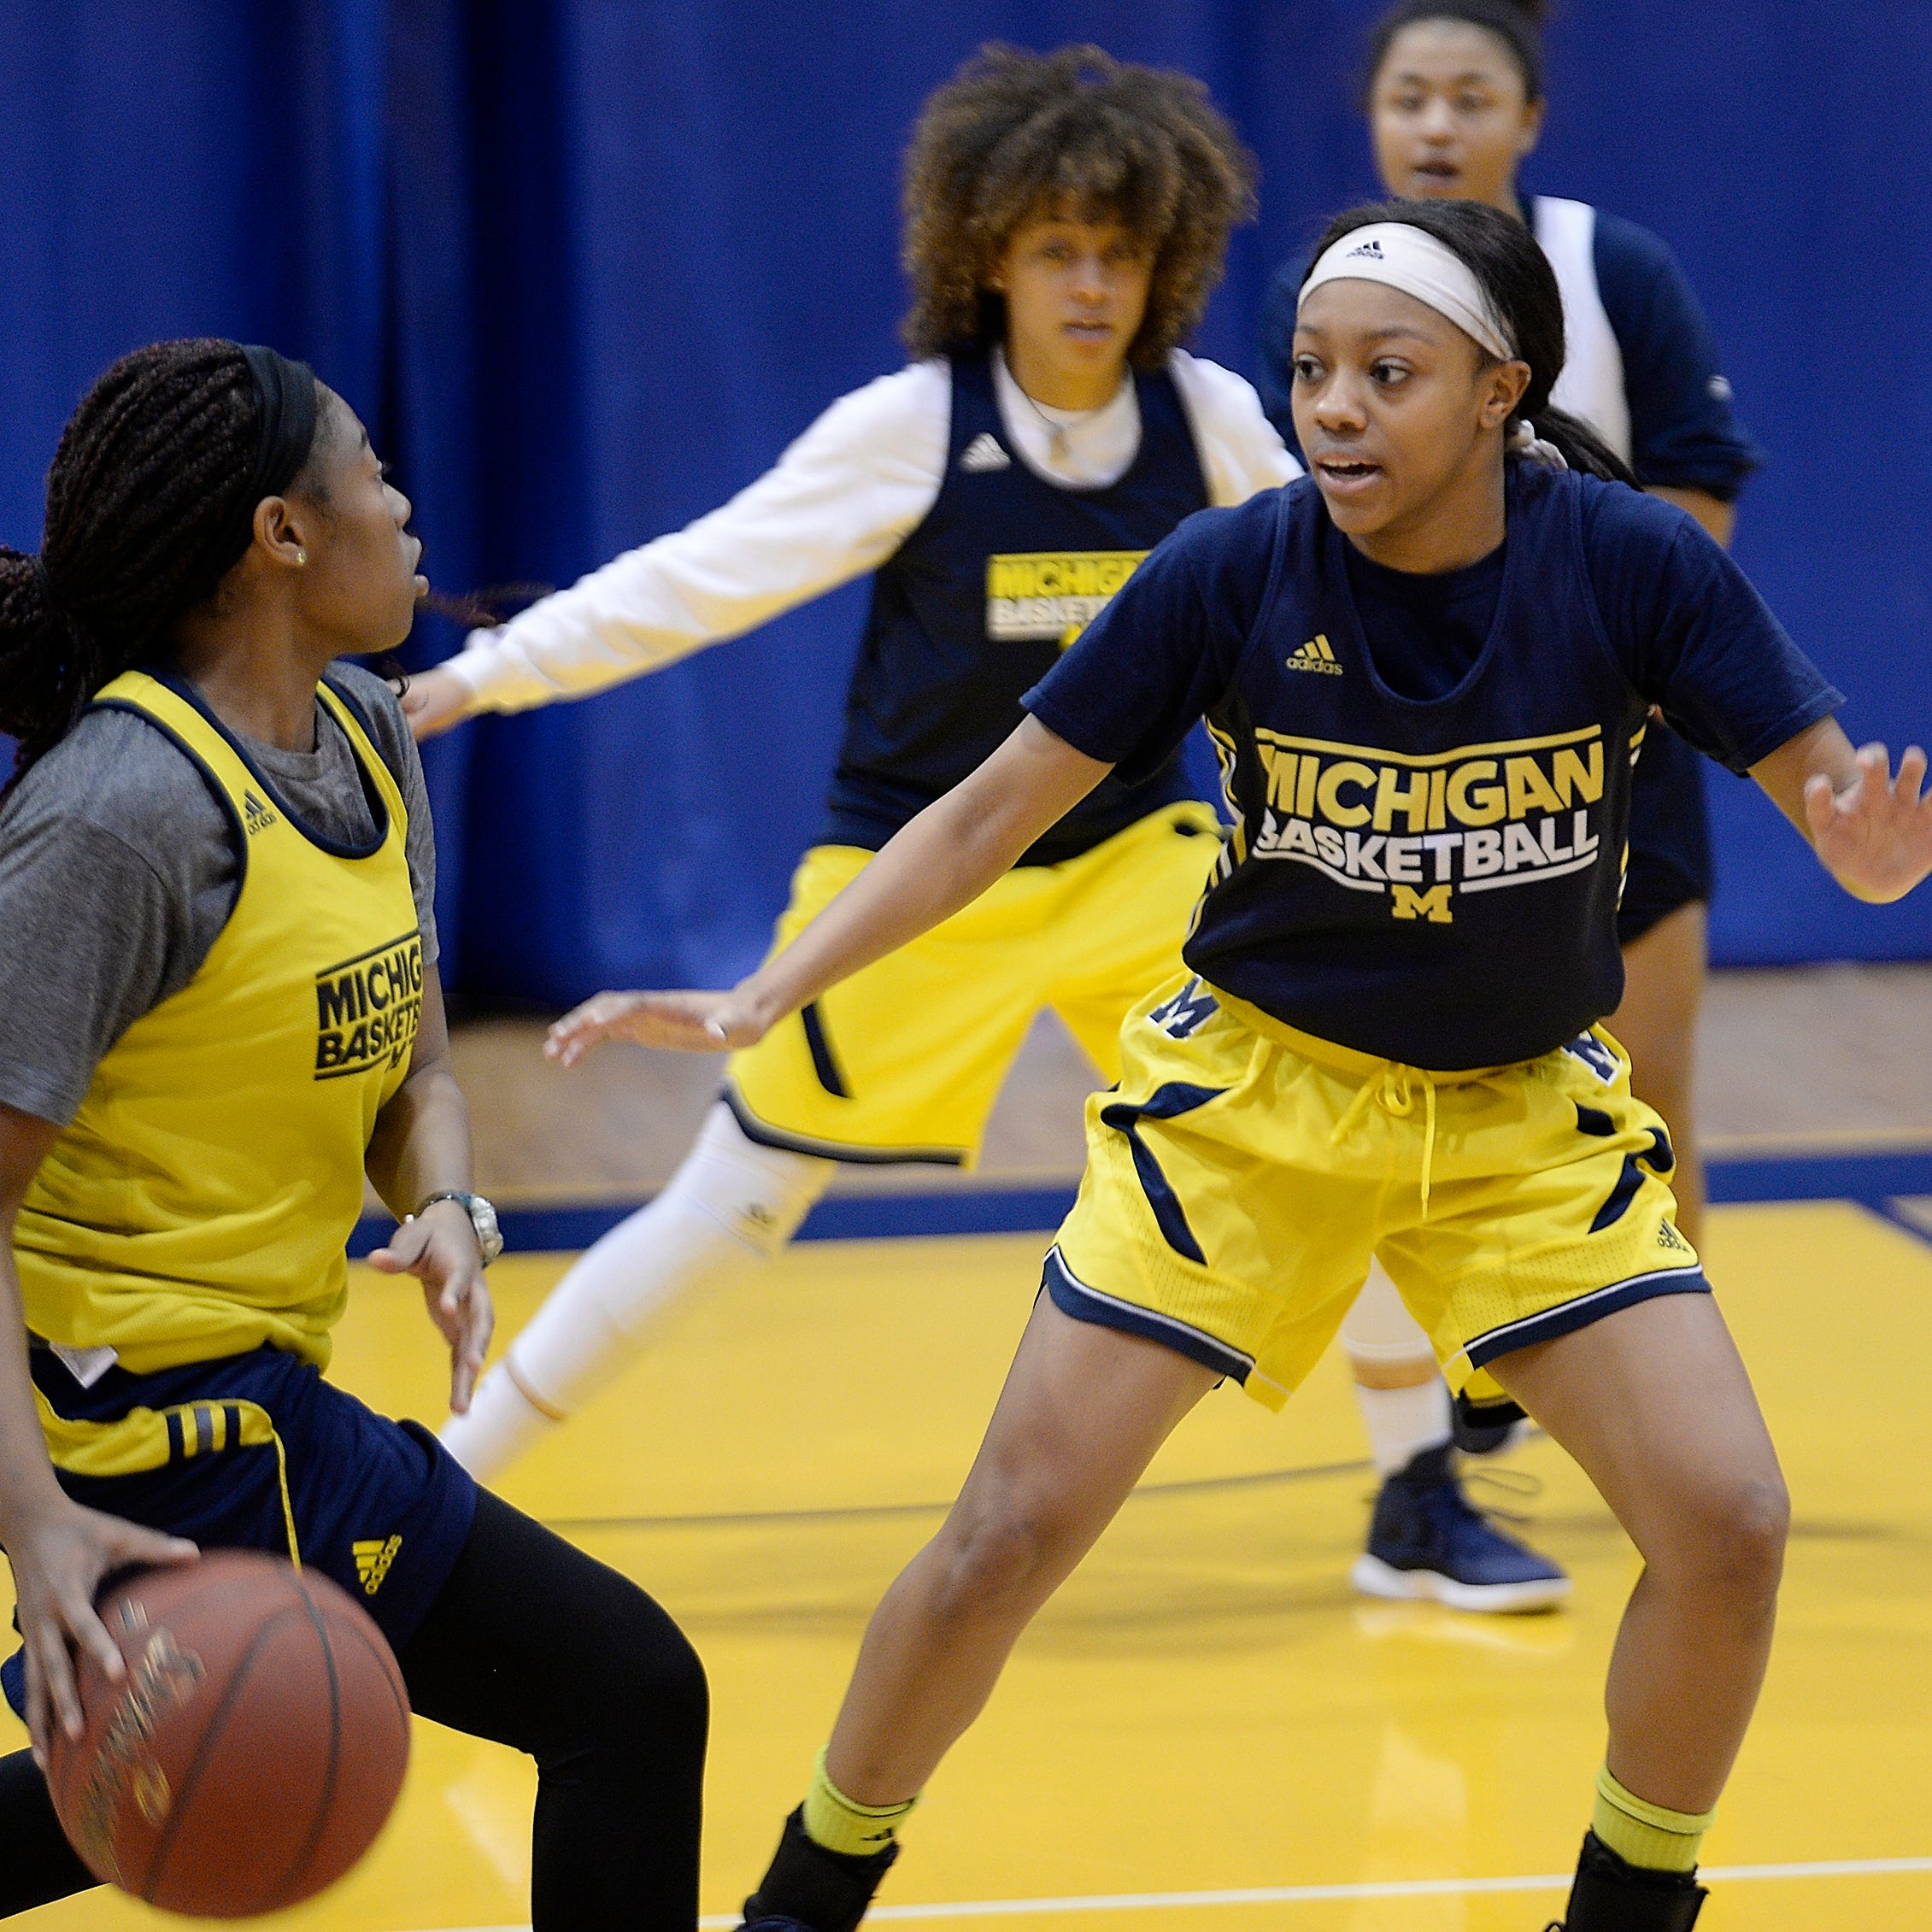 New additions give Michigan-Dearborn women new life in turnaround season